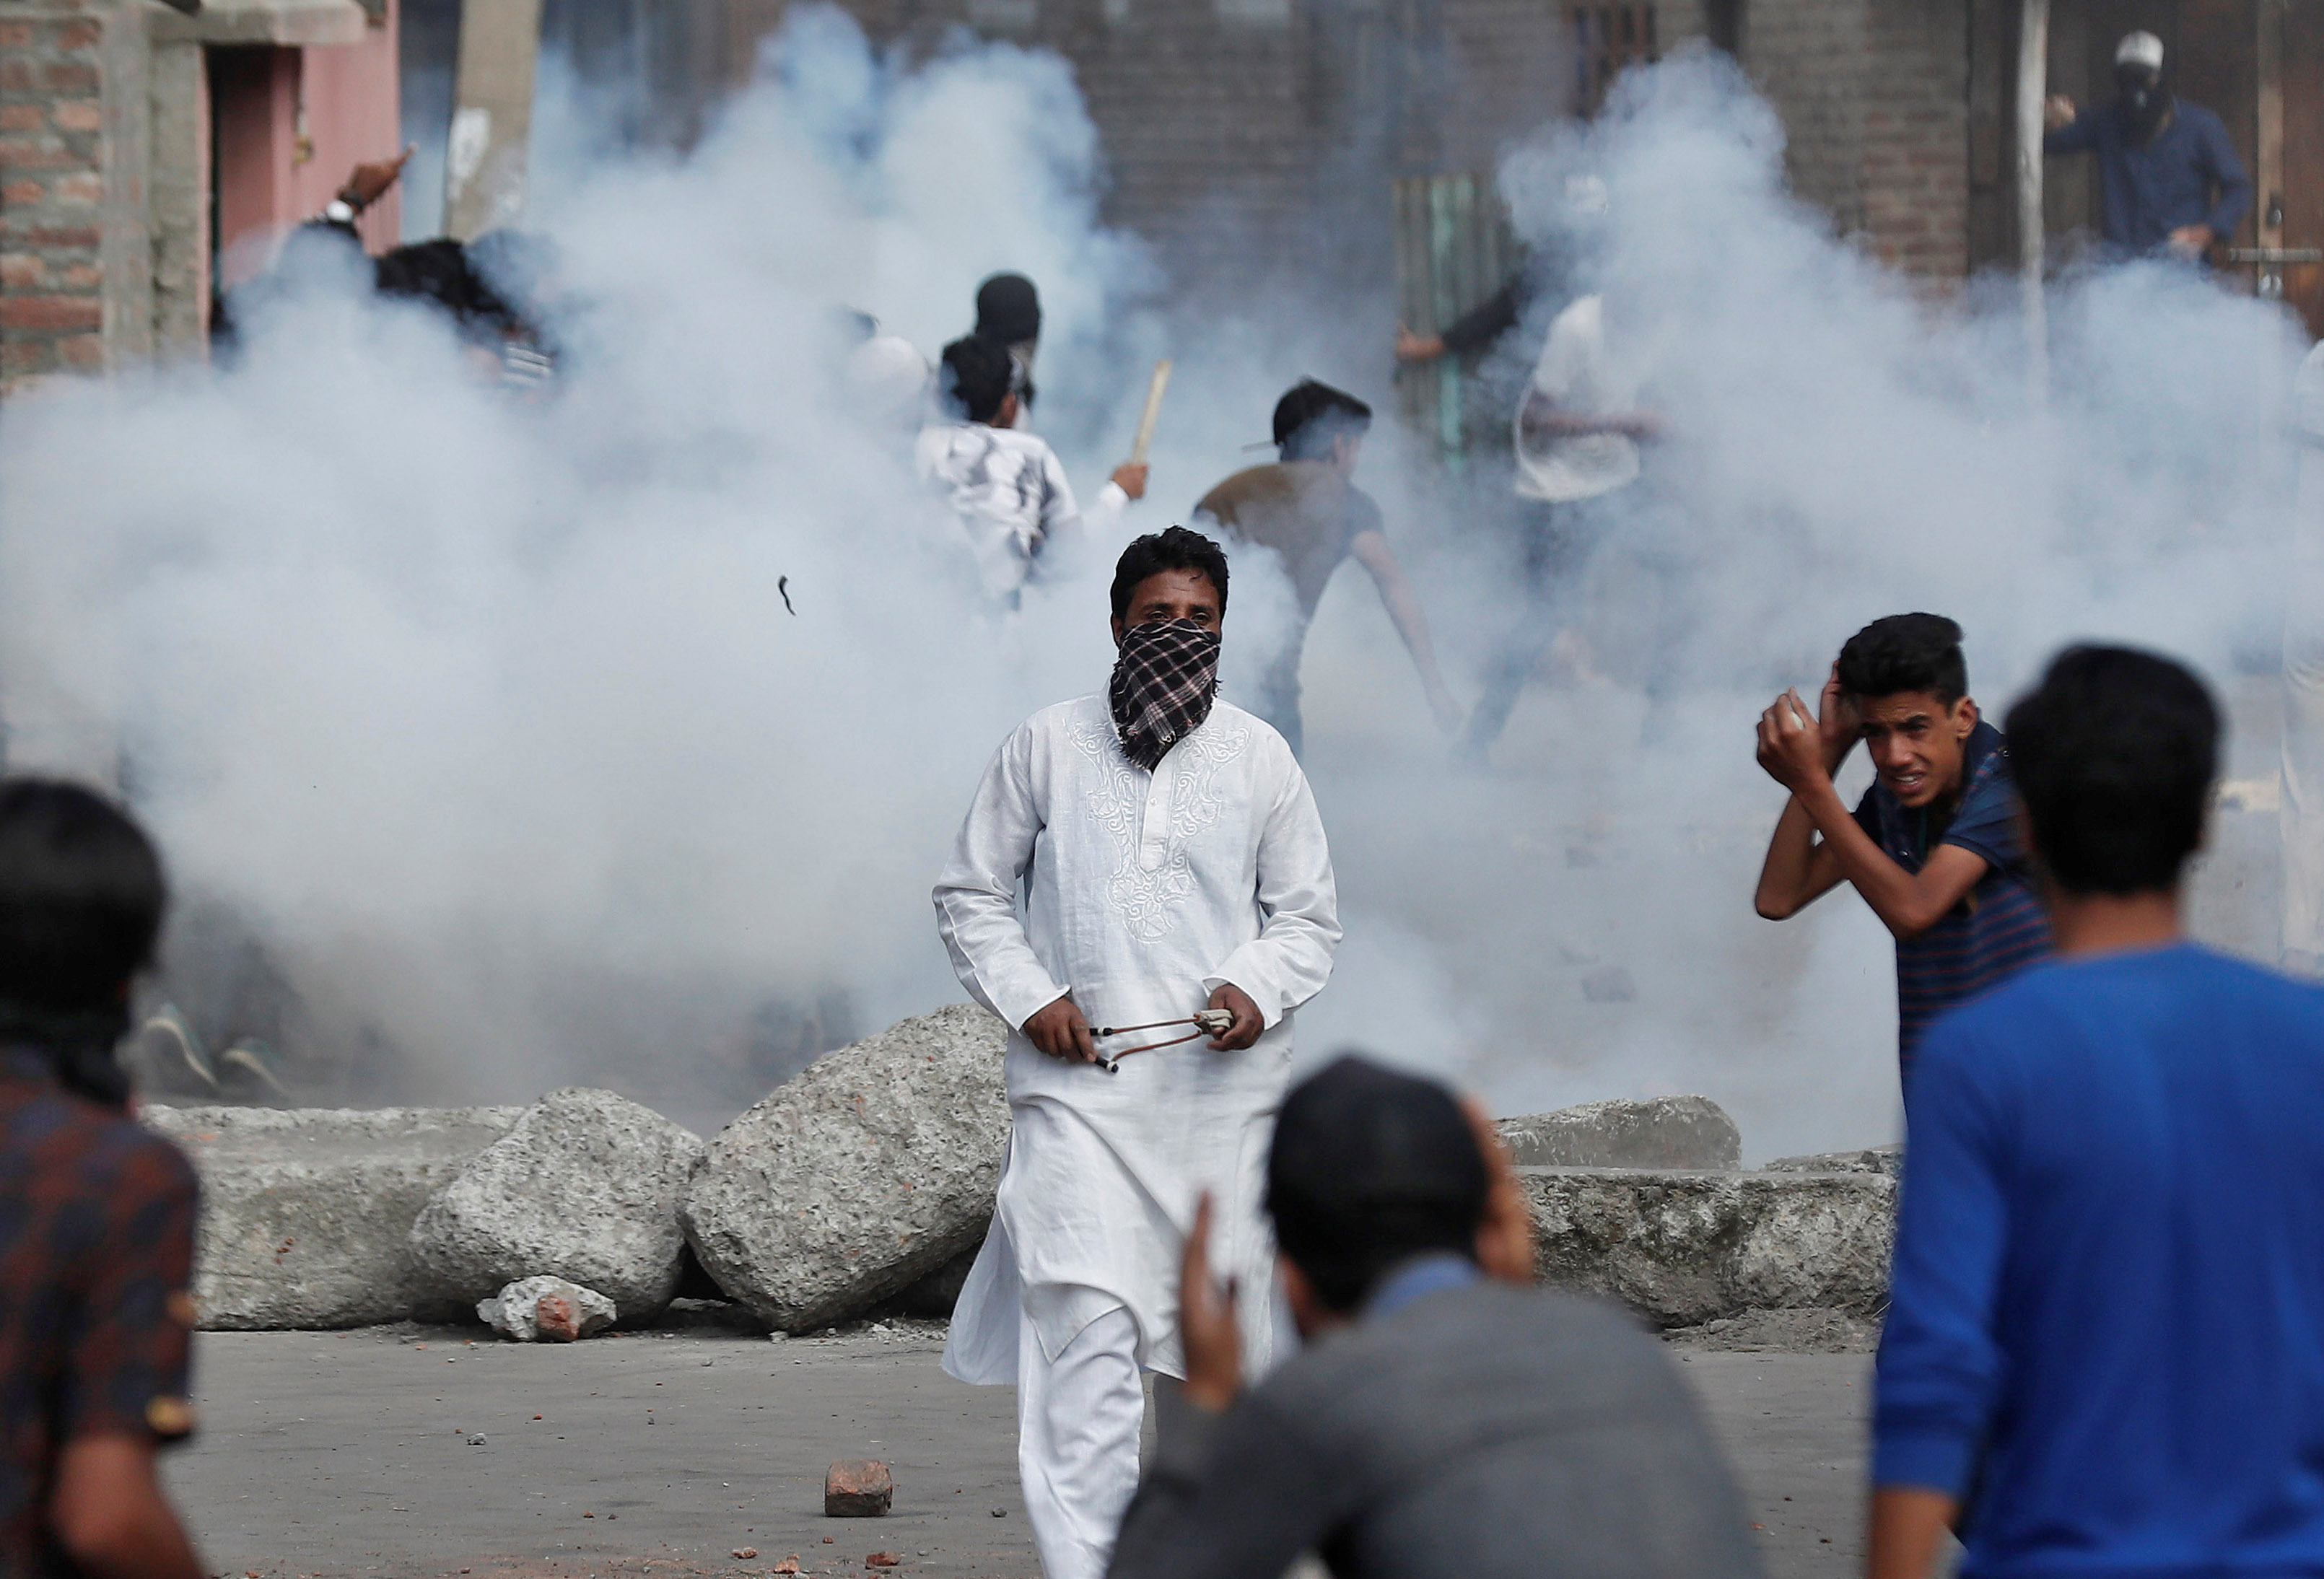 Kashmiris run for cover as smoke rises from teargas shells fired by Indian security forces during clashes, after scrapping of the special constitutional status for Kashmir by the Indian government, in Srinagar, August 23, 2019. REUTERS/Adnan Abidi - RC1E8E32D200